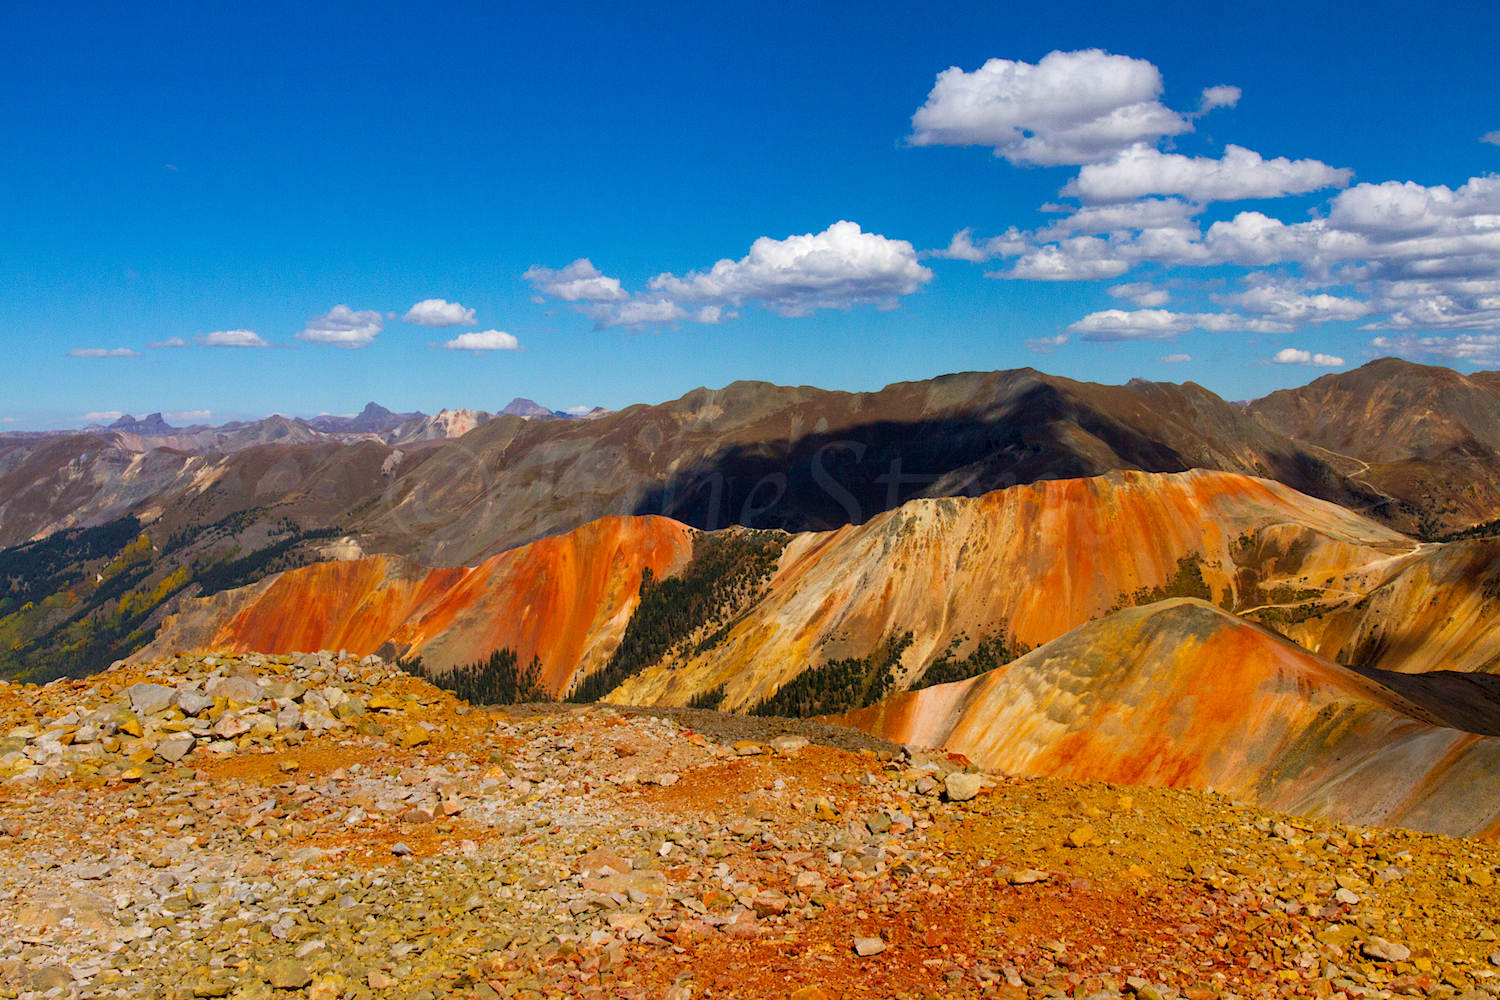 Red Mountain #3, Image # 6498